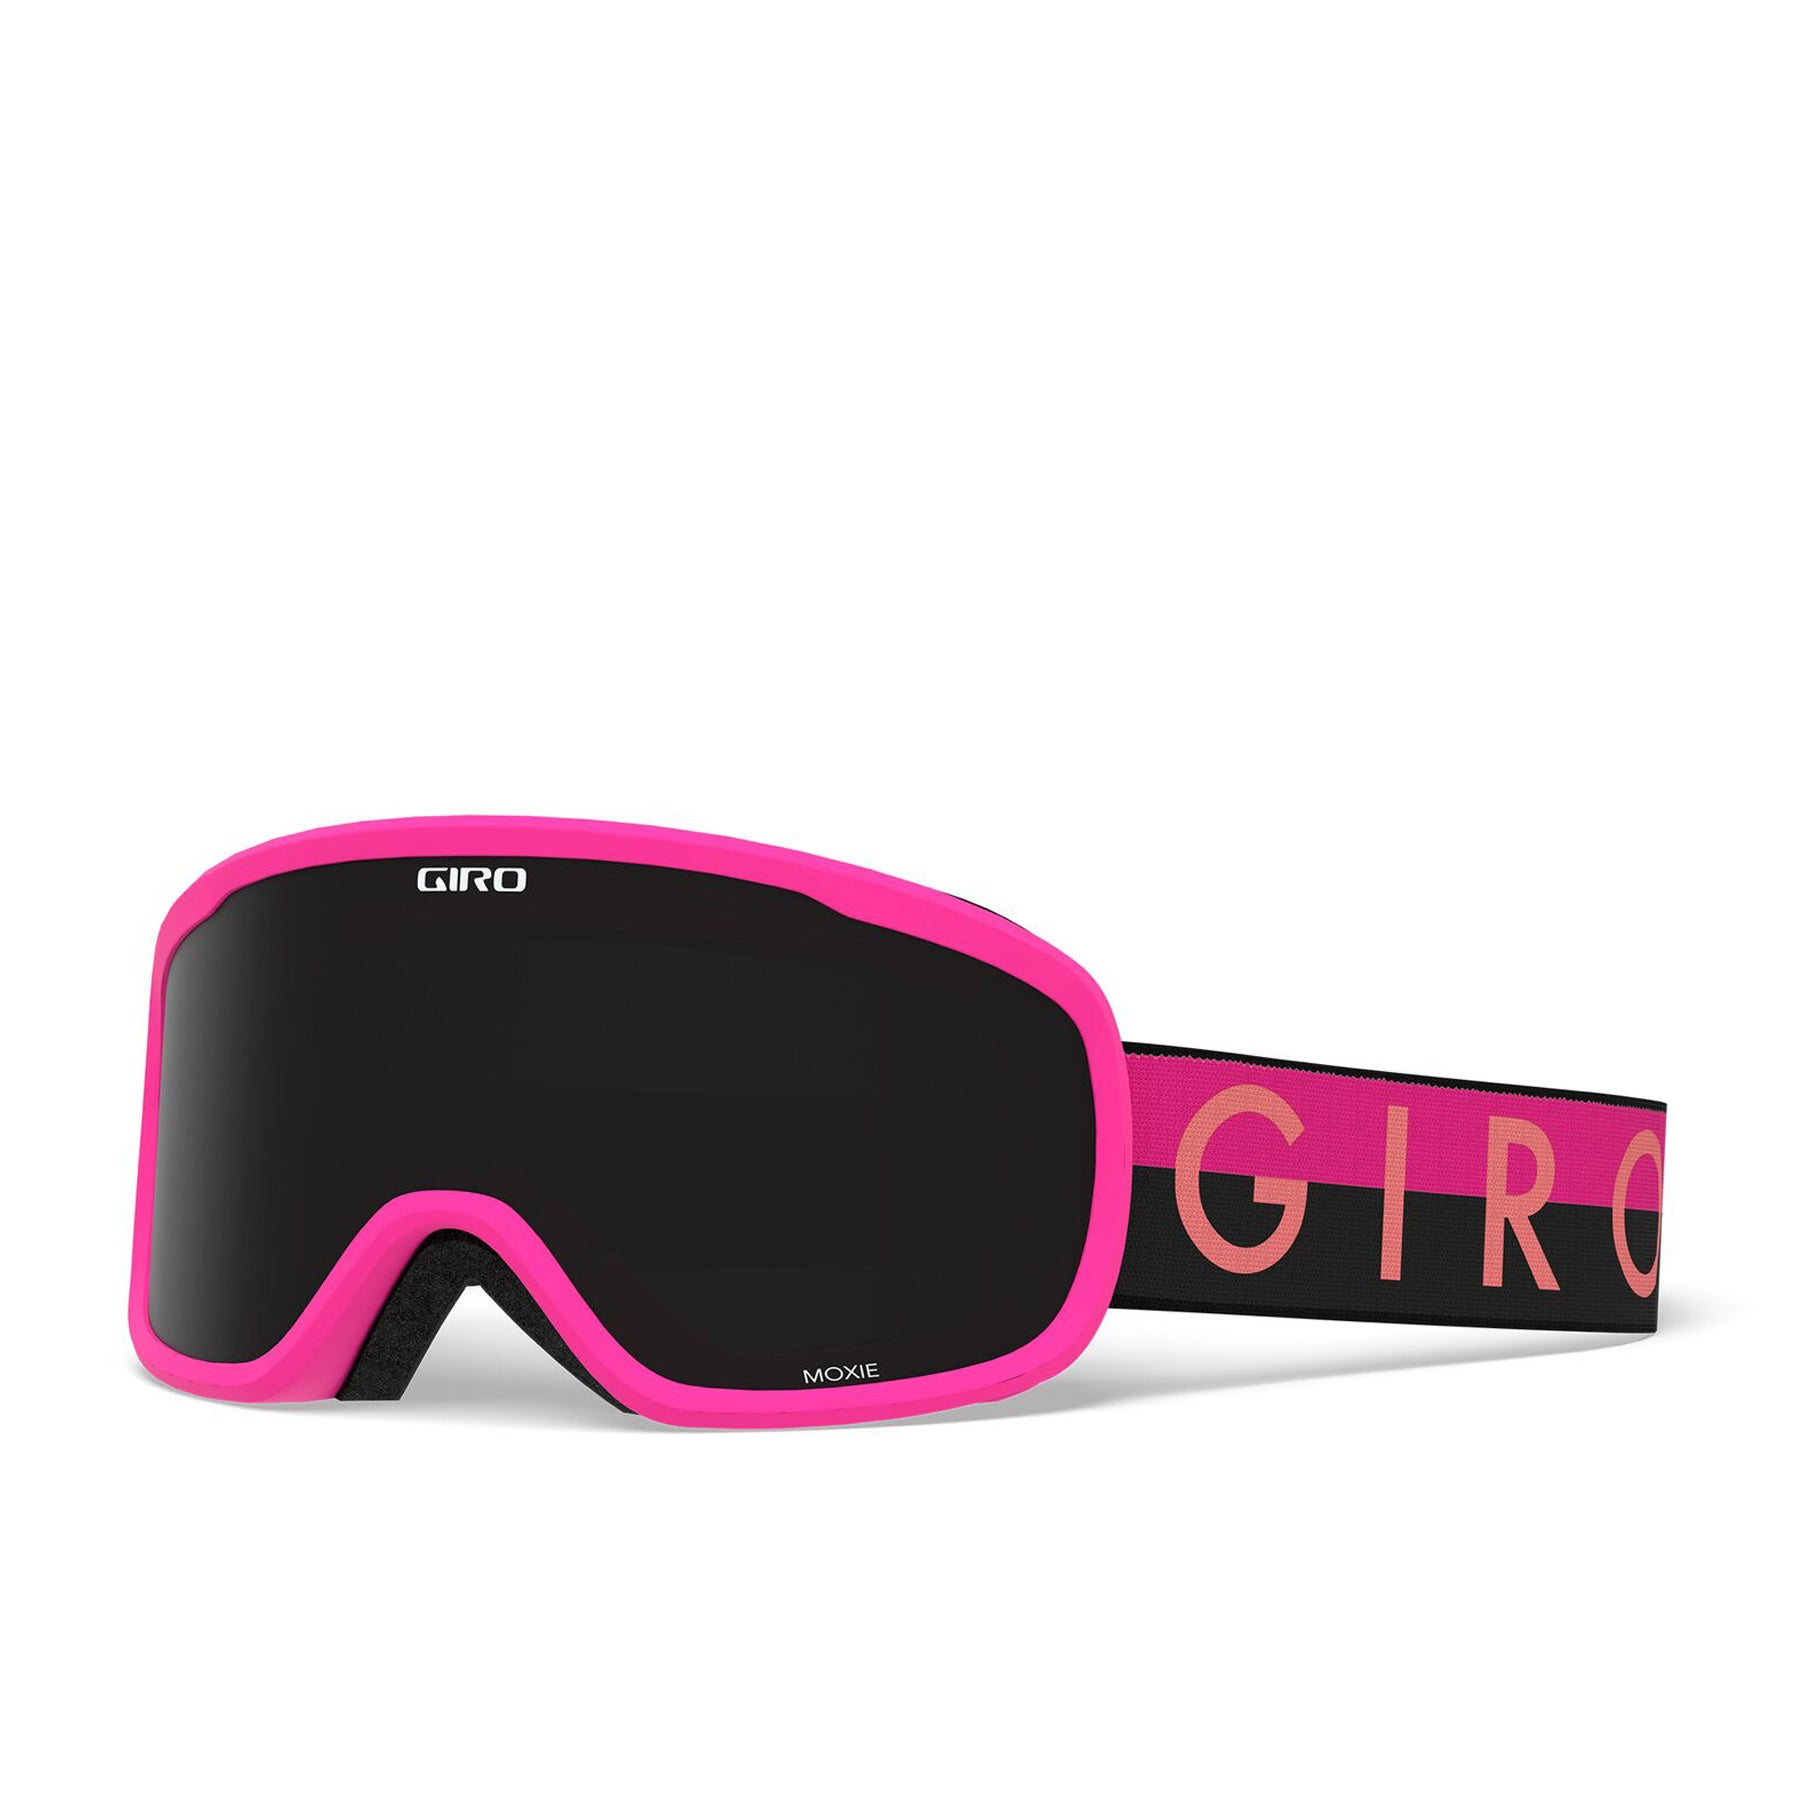 Giro Moxie Womens Snow Goggles - Black Pink Throwback Ultra Black Yellow